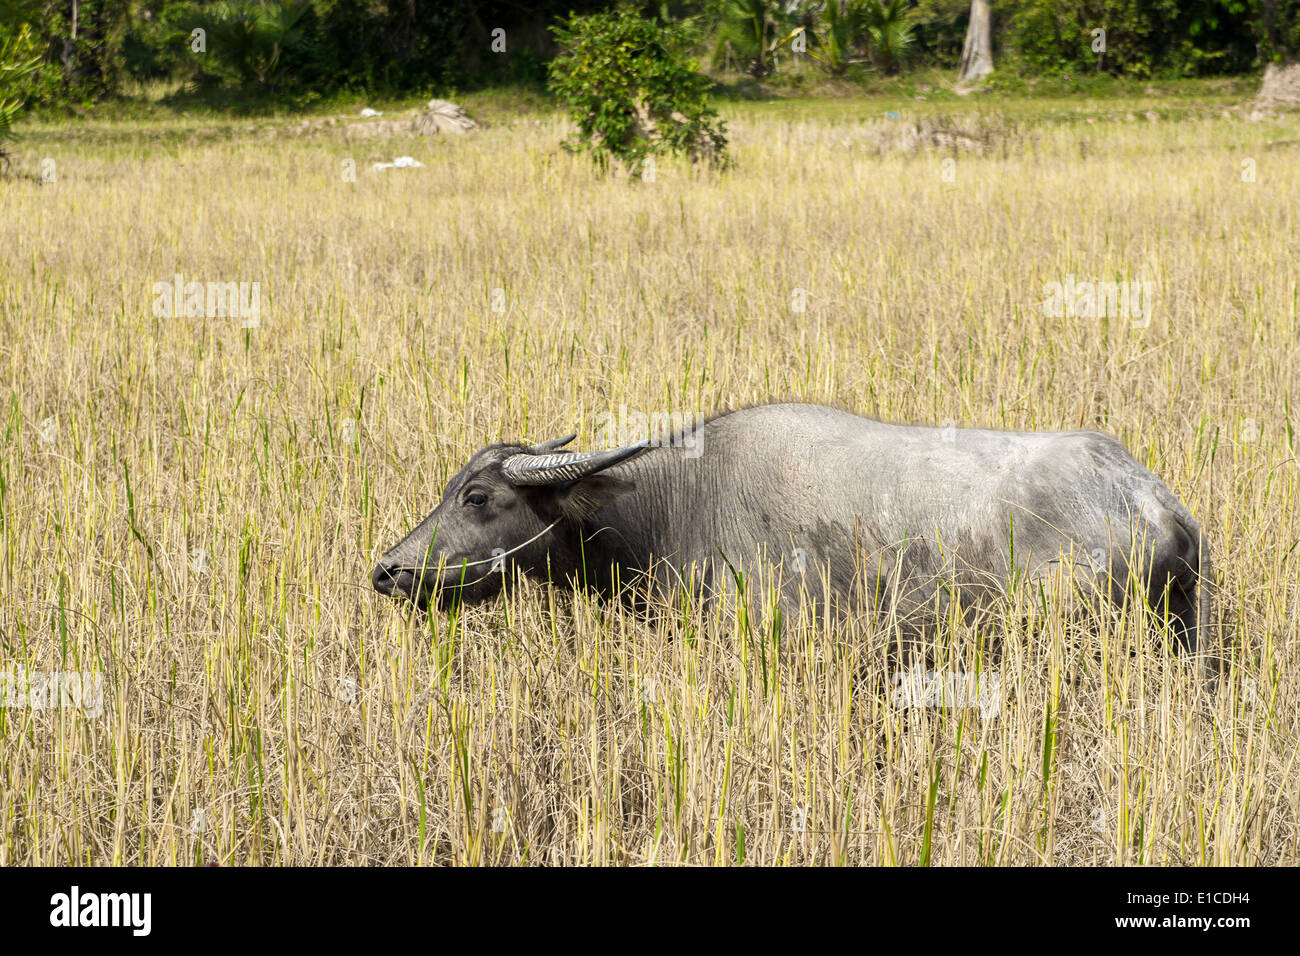 The wild water buffalo (Bubalus arnee), also called Asian buffalo and Asiatic buffalo, is a large bovine native to Southeast Asia - Stock Image